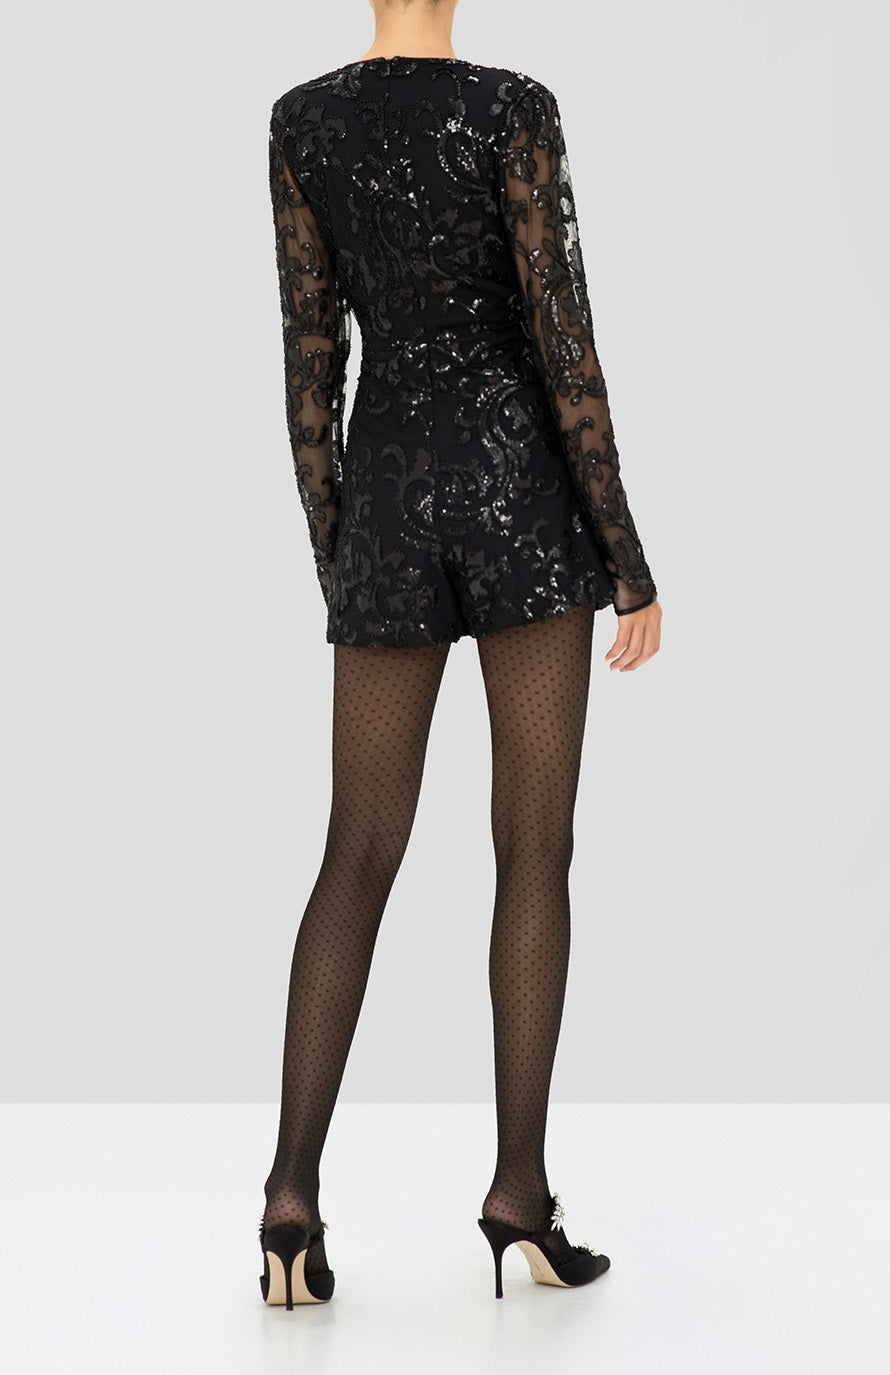 Alexis Riso Romper in Beaded Black from the Holiday 2019 Ready To Wear Collection - Rear View